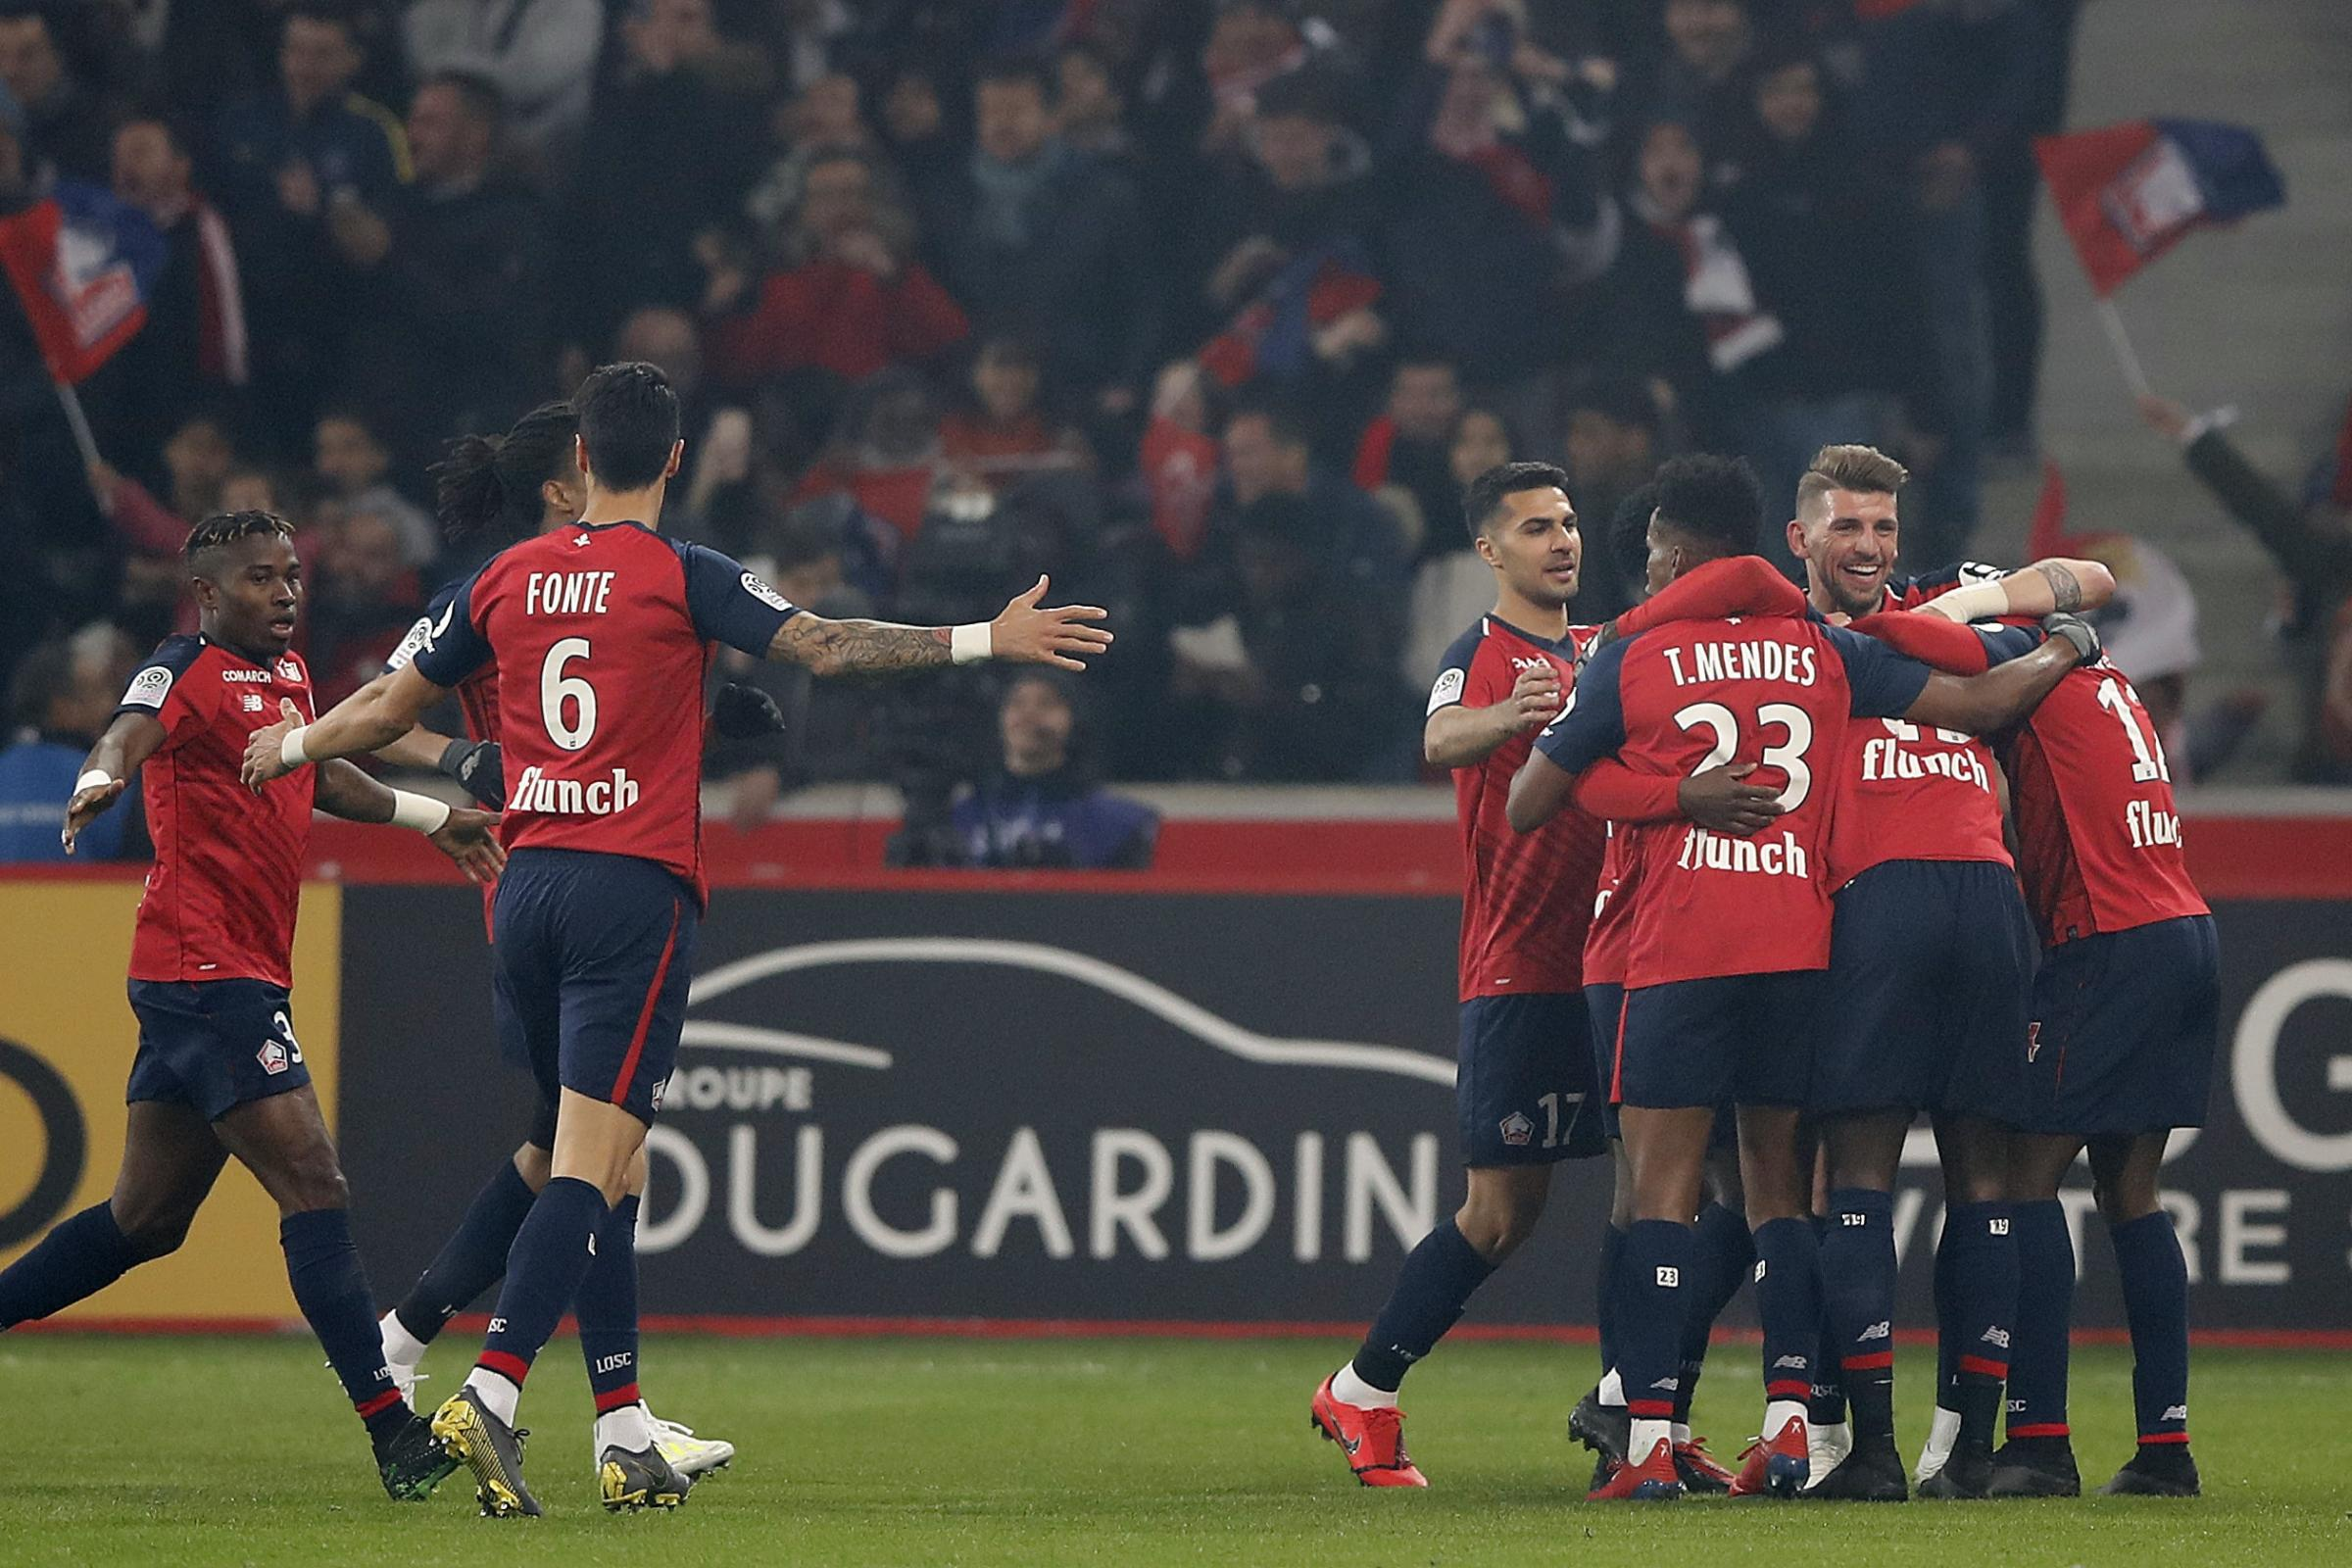 Lille produced a fine display on Sunday night